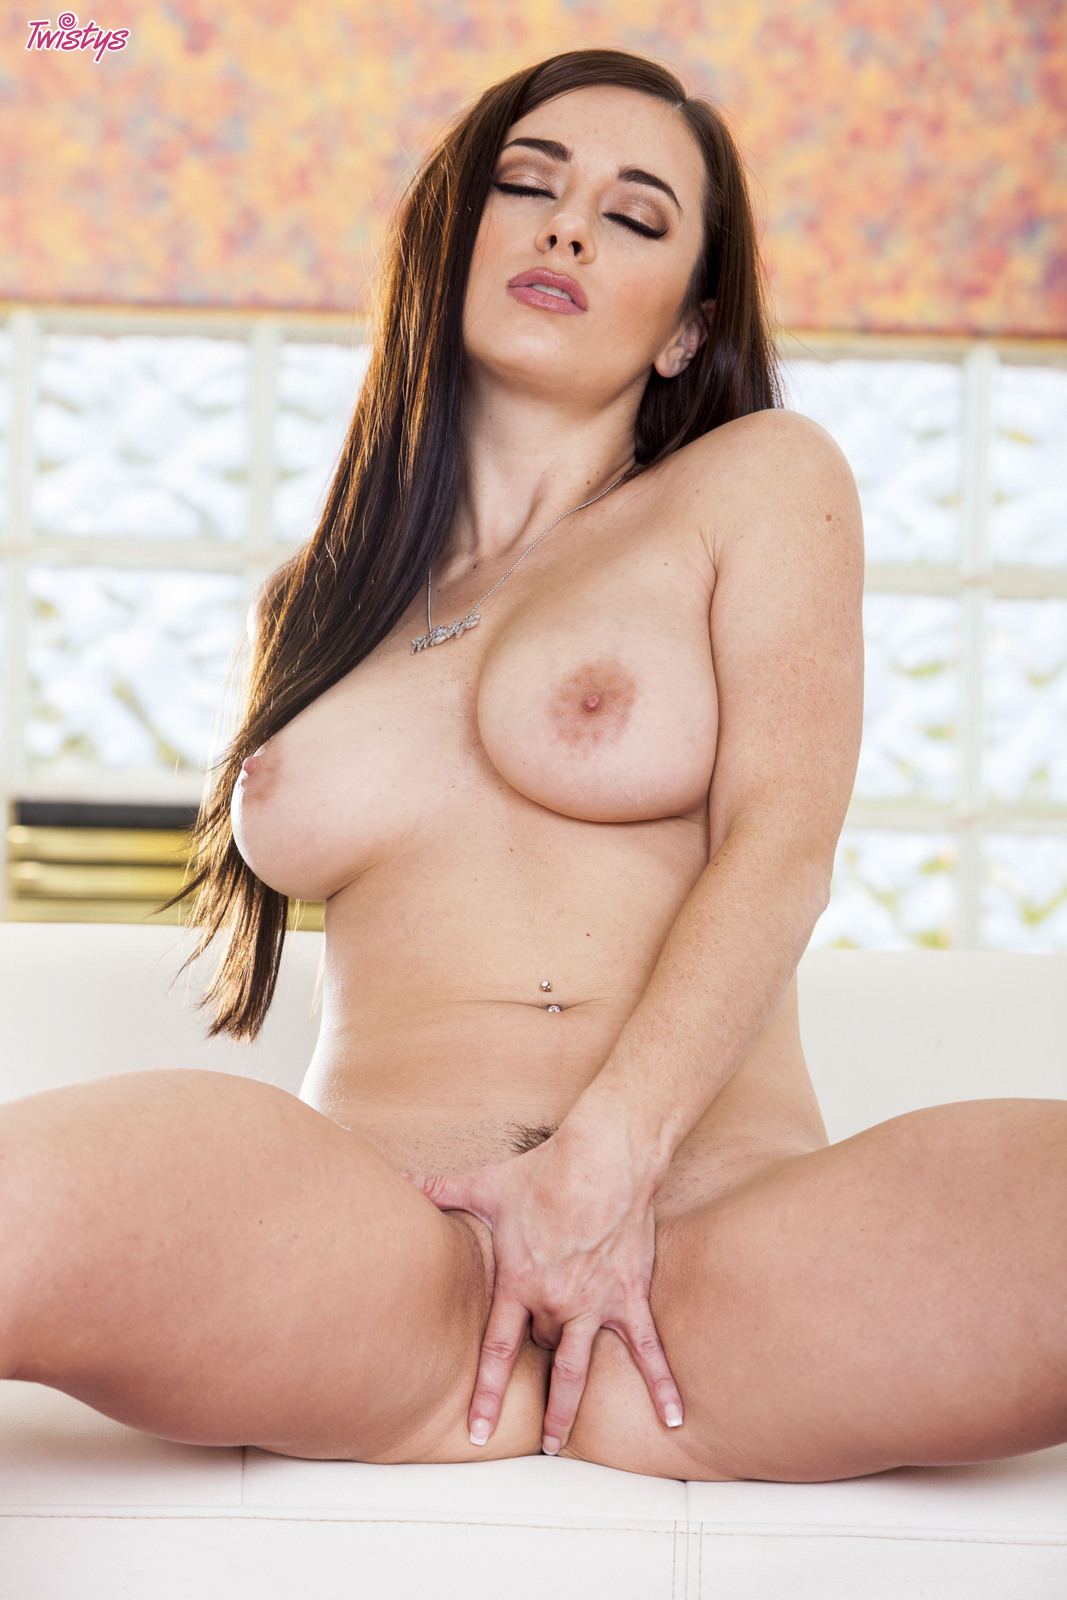 Taylor vixen gets naughty celebrating new years day